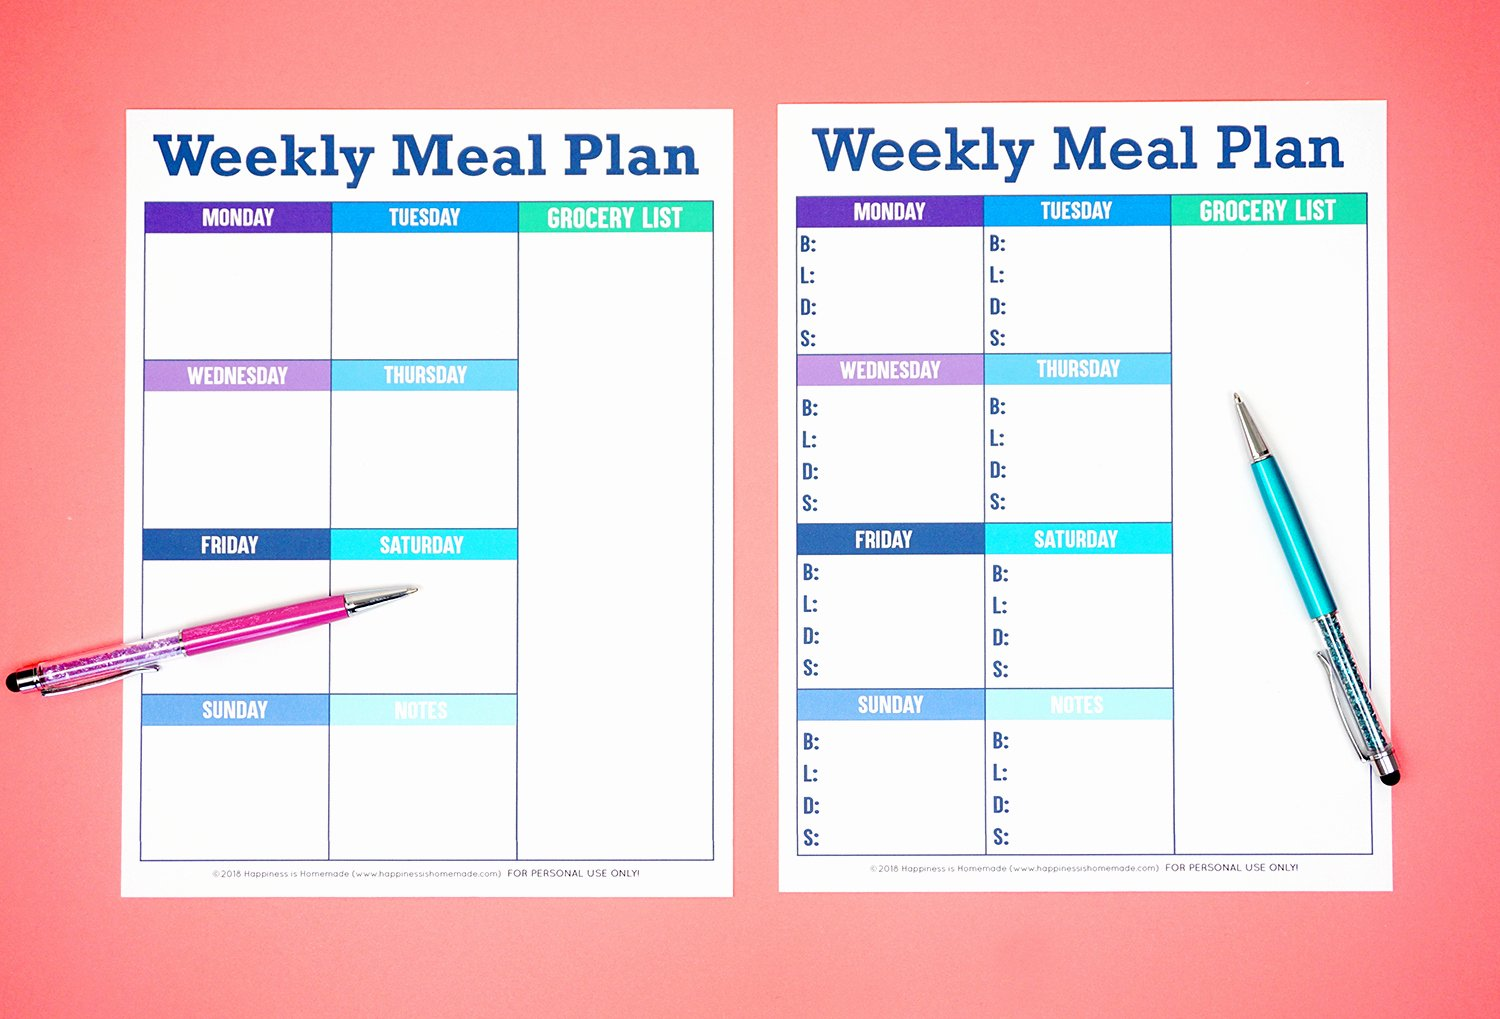 Free Meal Planner Template Download Luxury Printable Weekly Meal Planner Template Happiness is Homemade